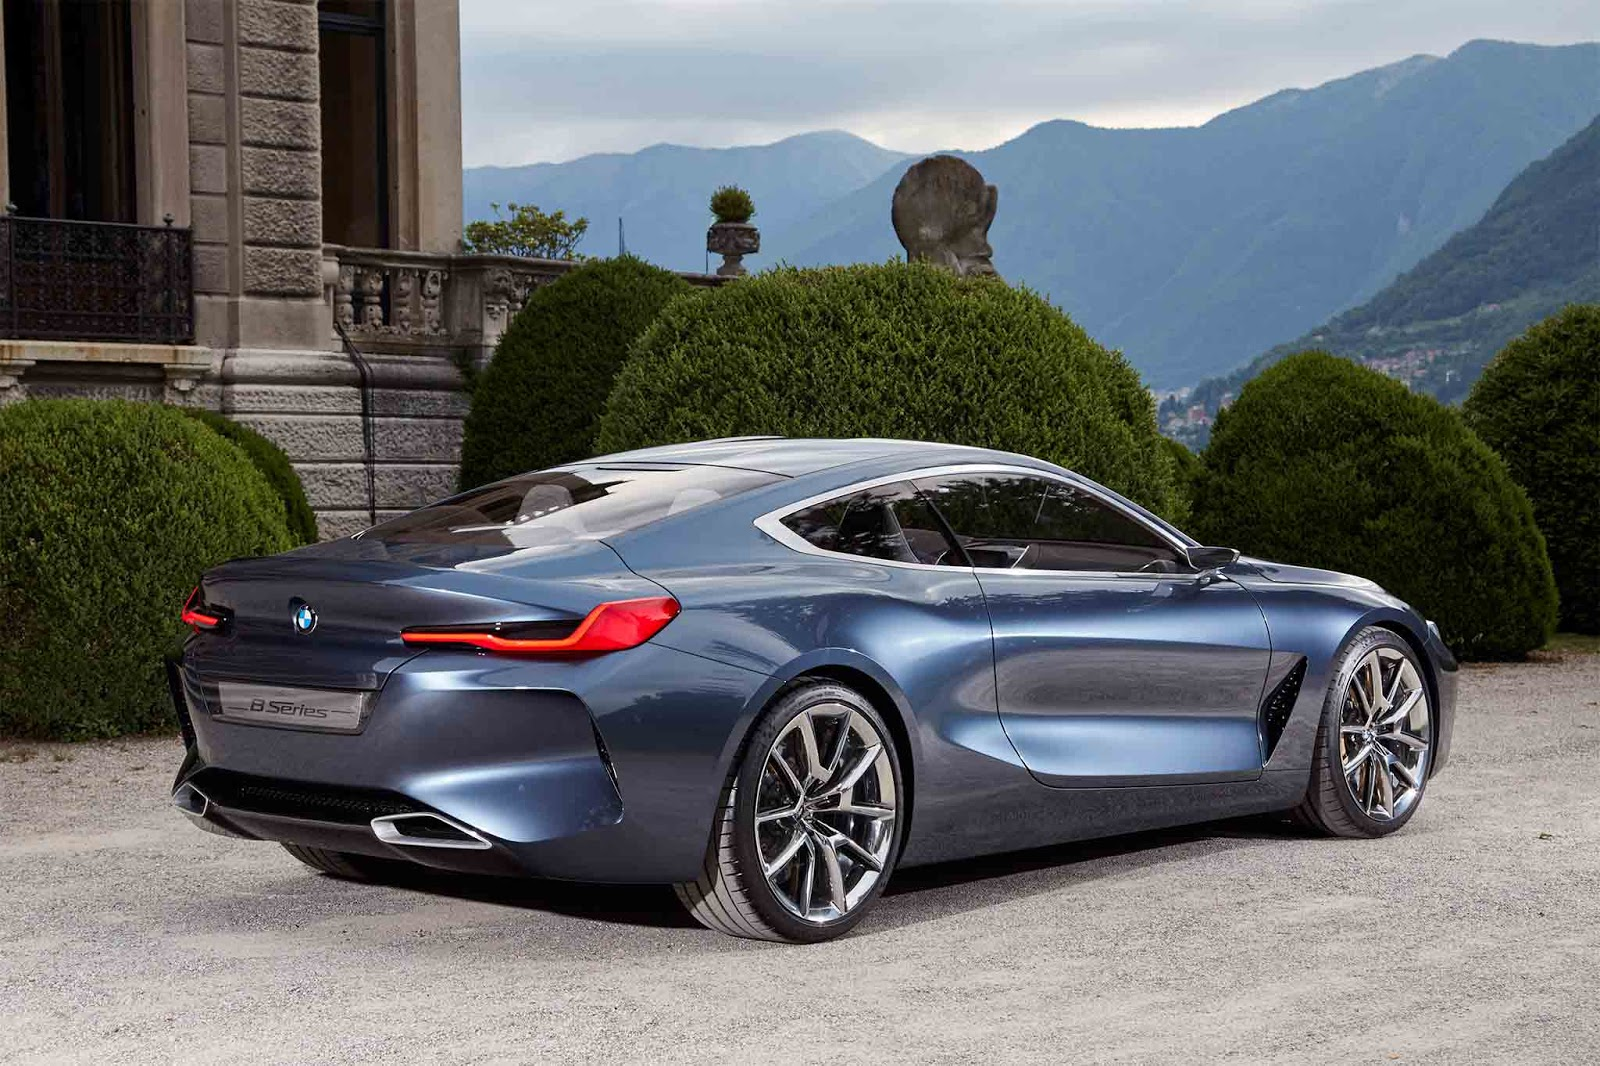 motoring malaysia bmw malaysia to preview the bmw concept 8 series at bmw luxury excellence. Black Bedroom Furniture Sets. Home Design Ideas